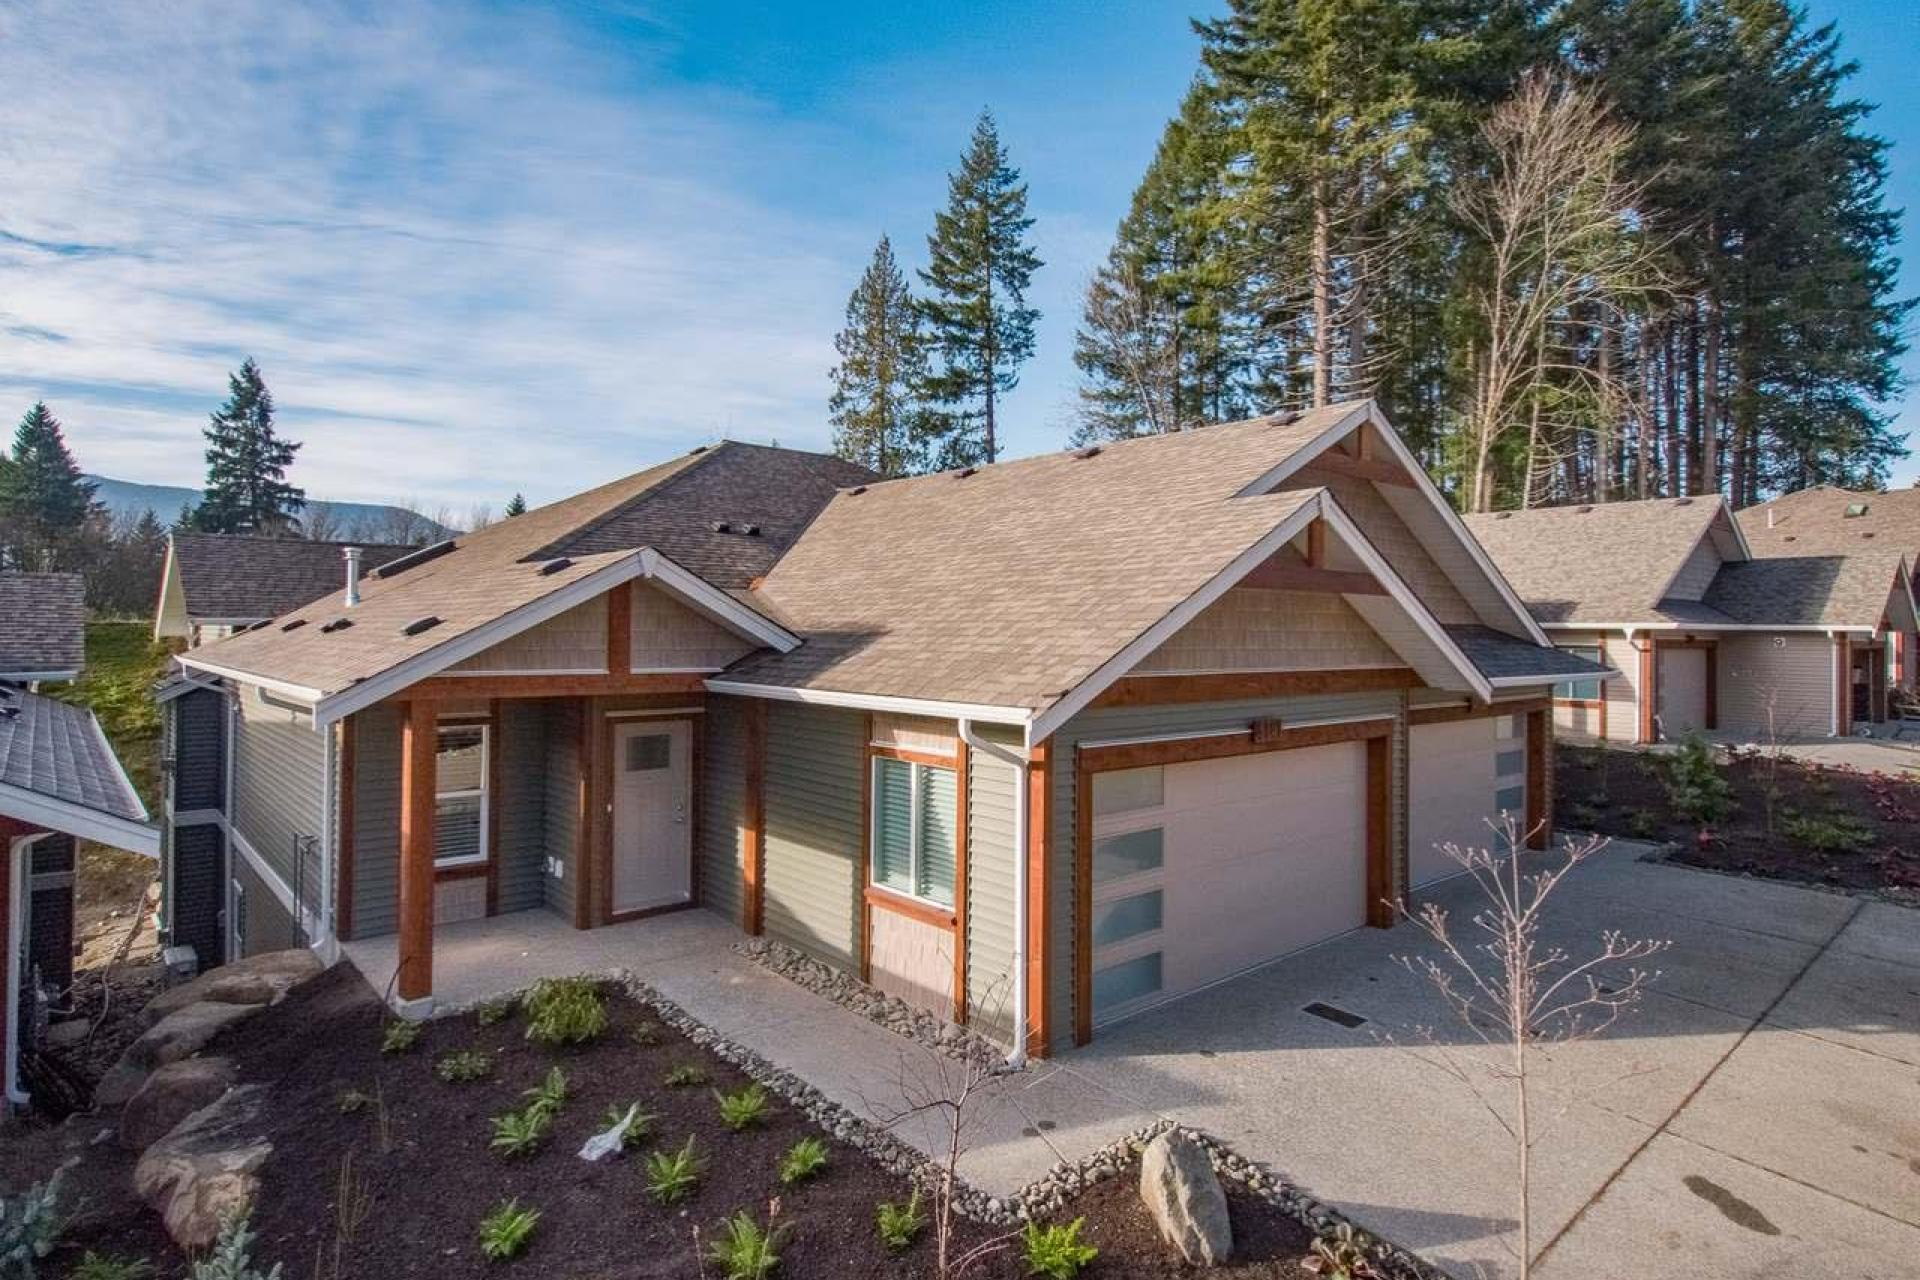 4153 Emerald Woods Place, Diver Lake, Nanaimo